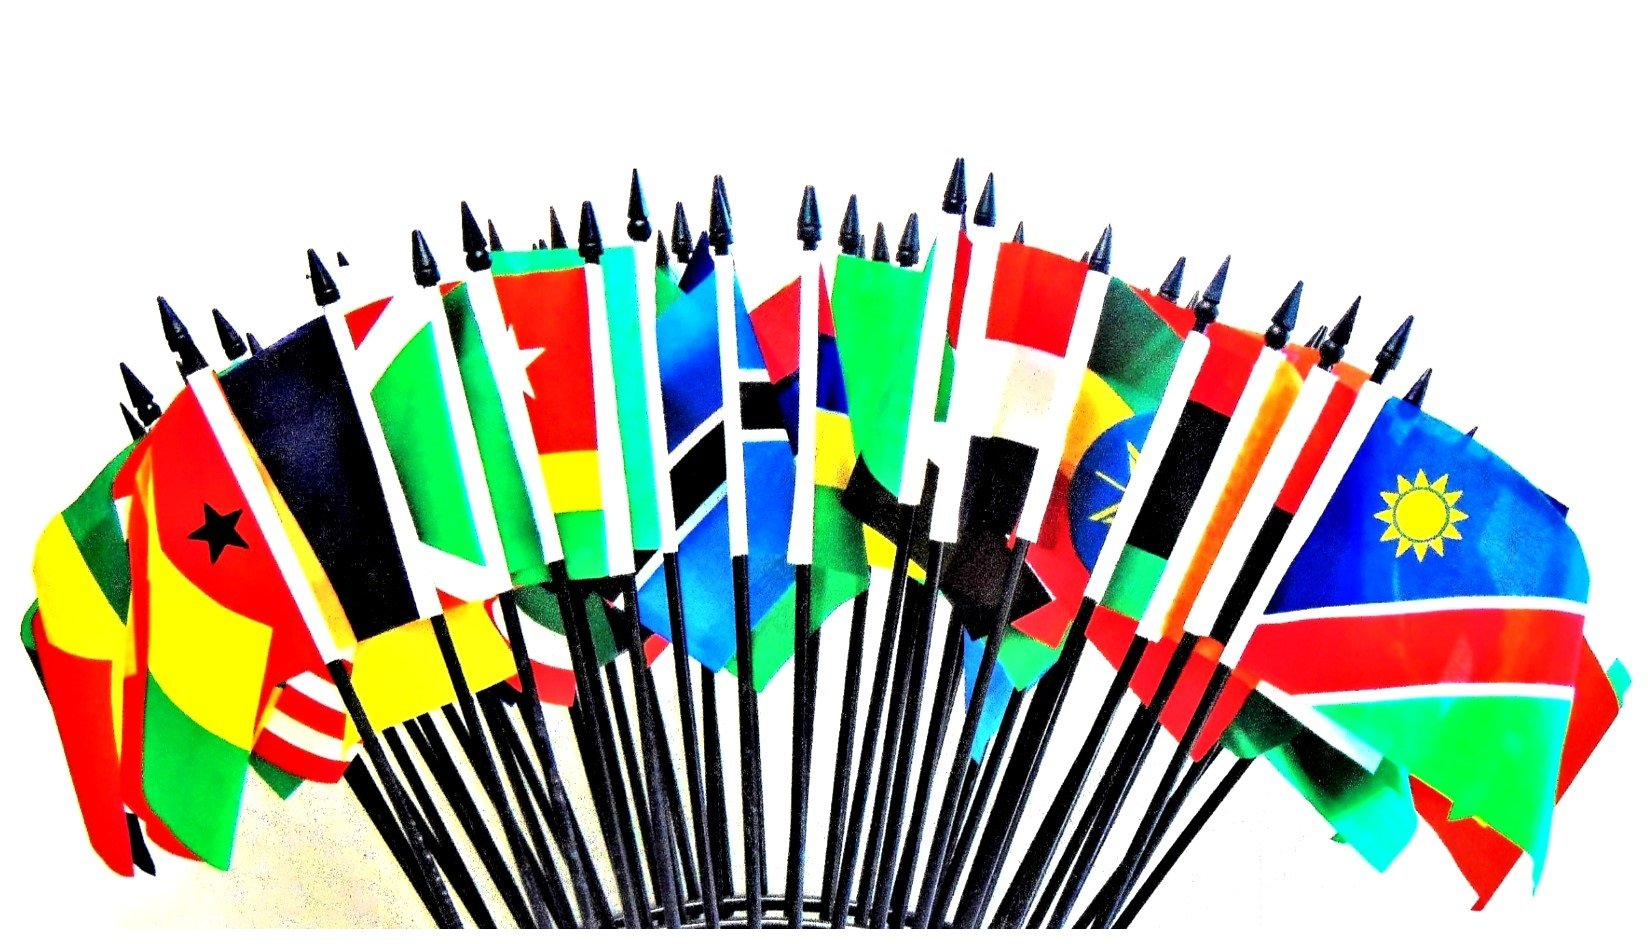 African Union World Flag SET-52 Polyester 4''x6'' Flags, One Flag for Each Country in The African Union, 4x6 Miniature Desk & Table Flags, Small Mini Stick Flags